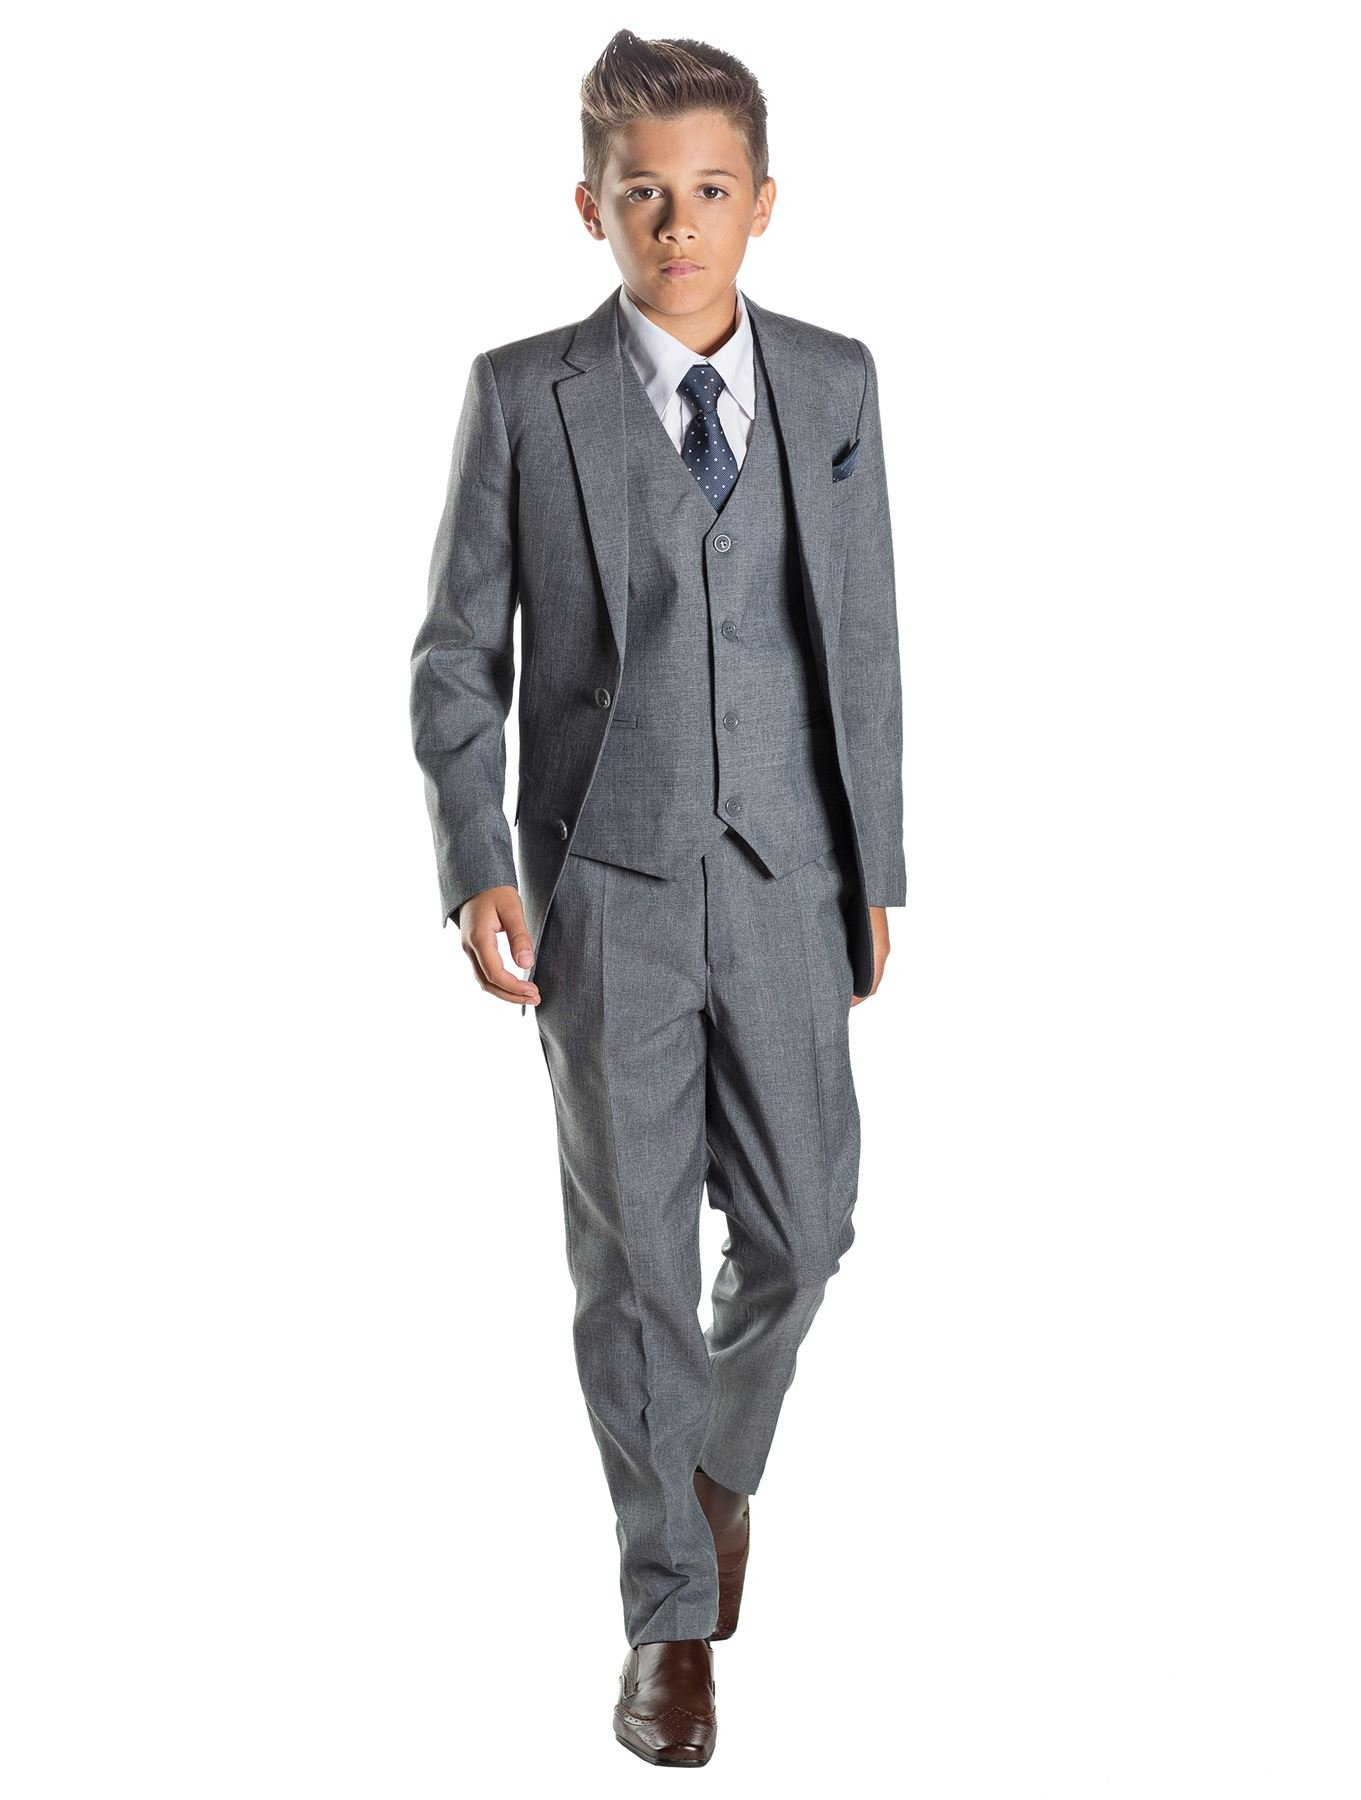 Paisley of London Boys Grey Ring Bearer Suit, 7